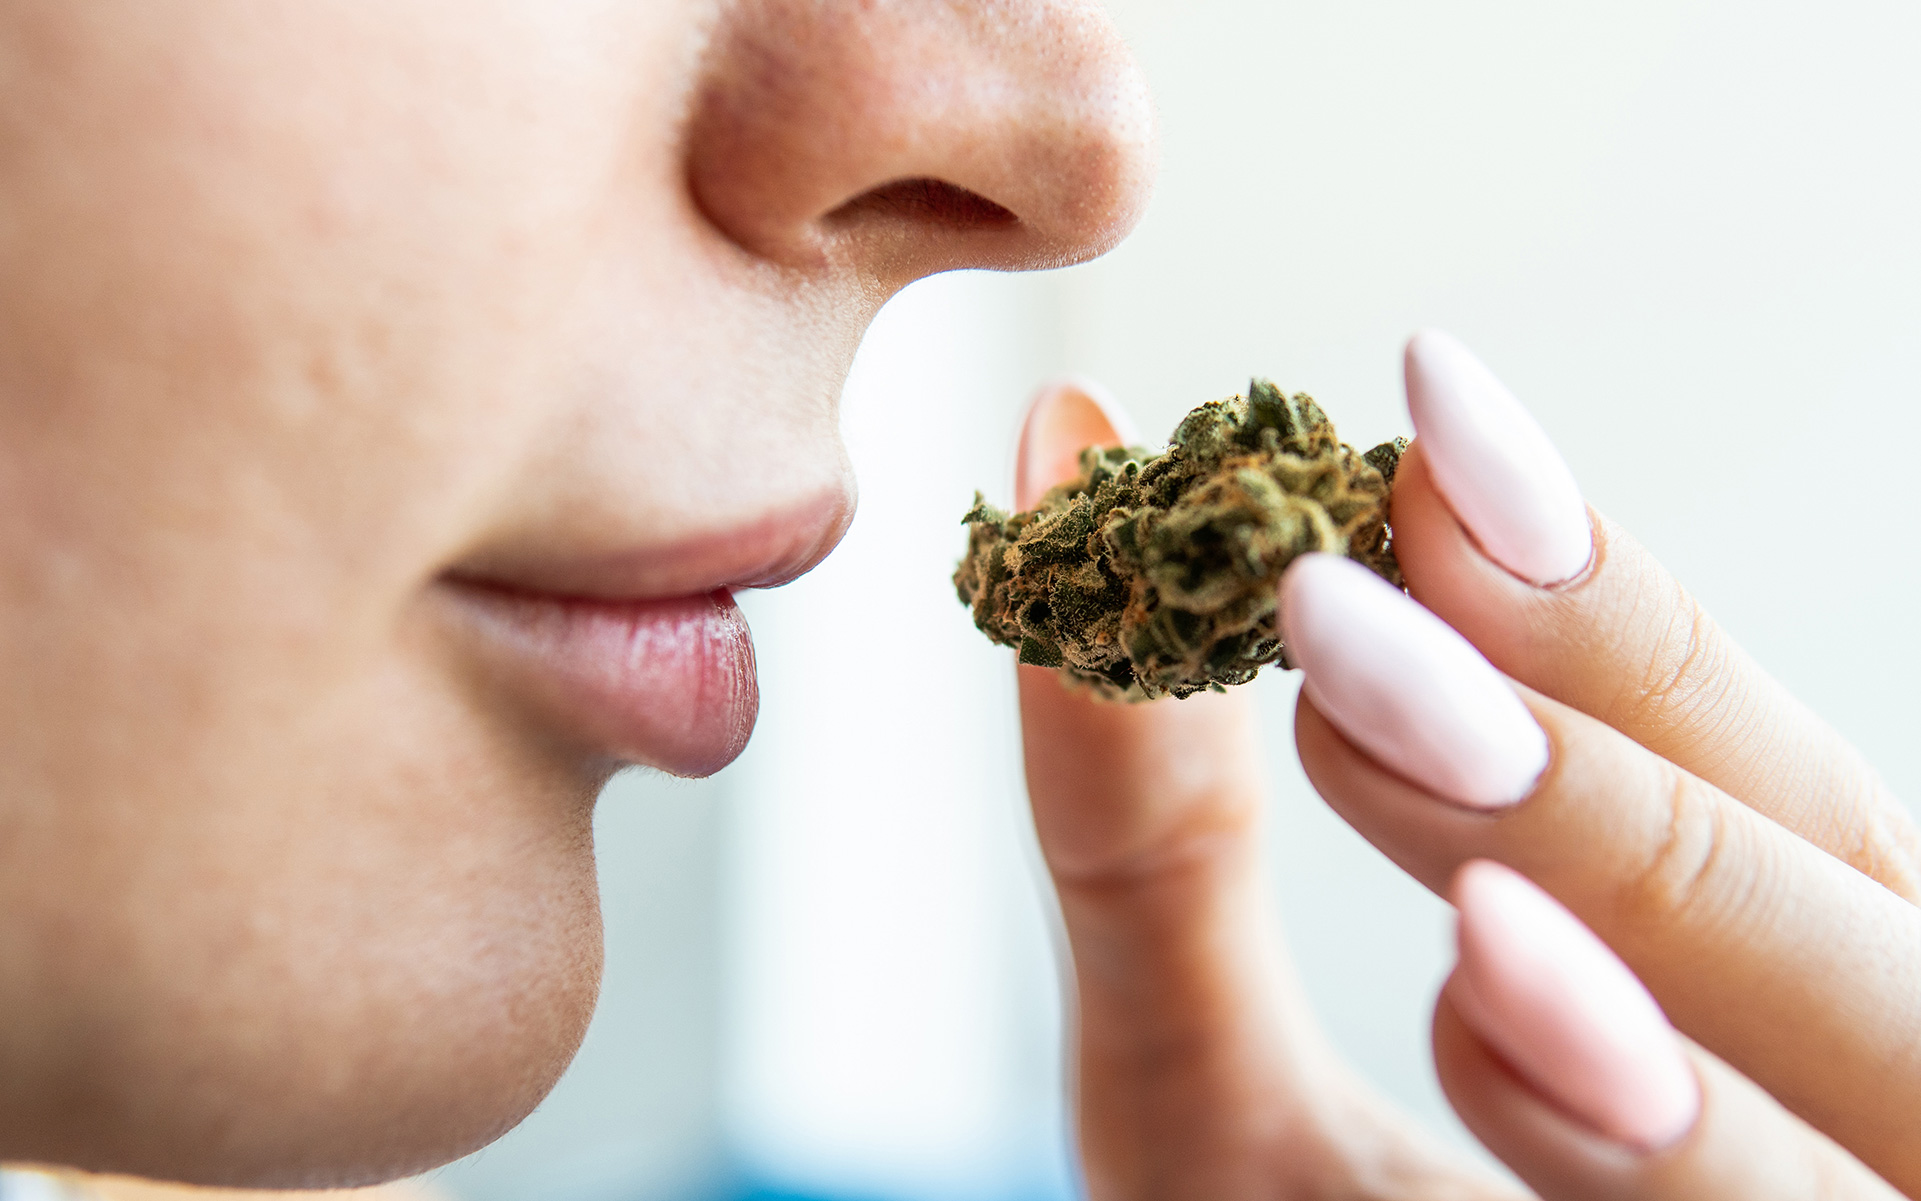 marijuana smell, cannabis odor